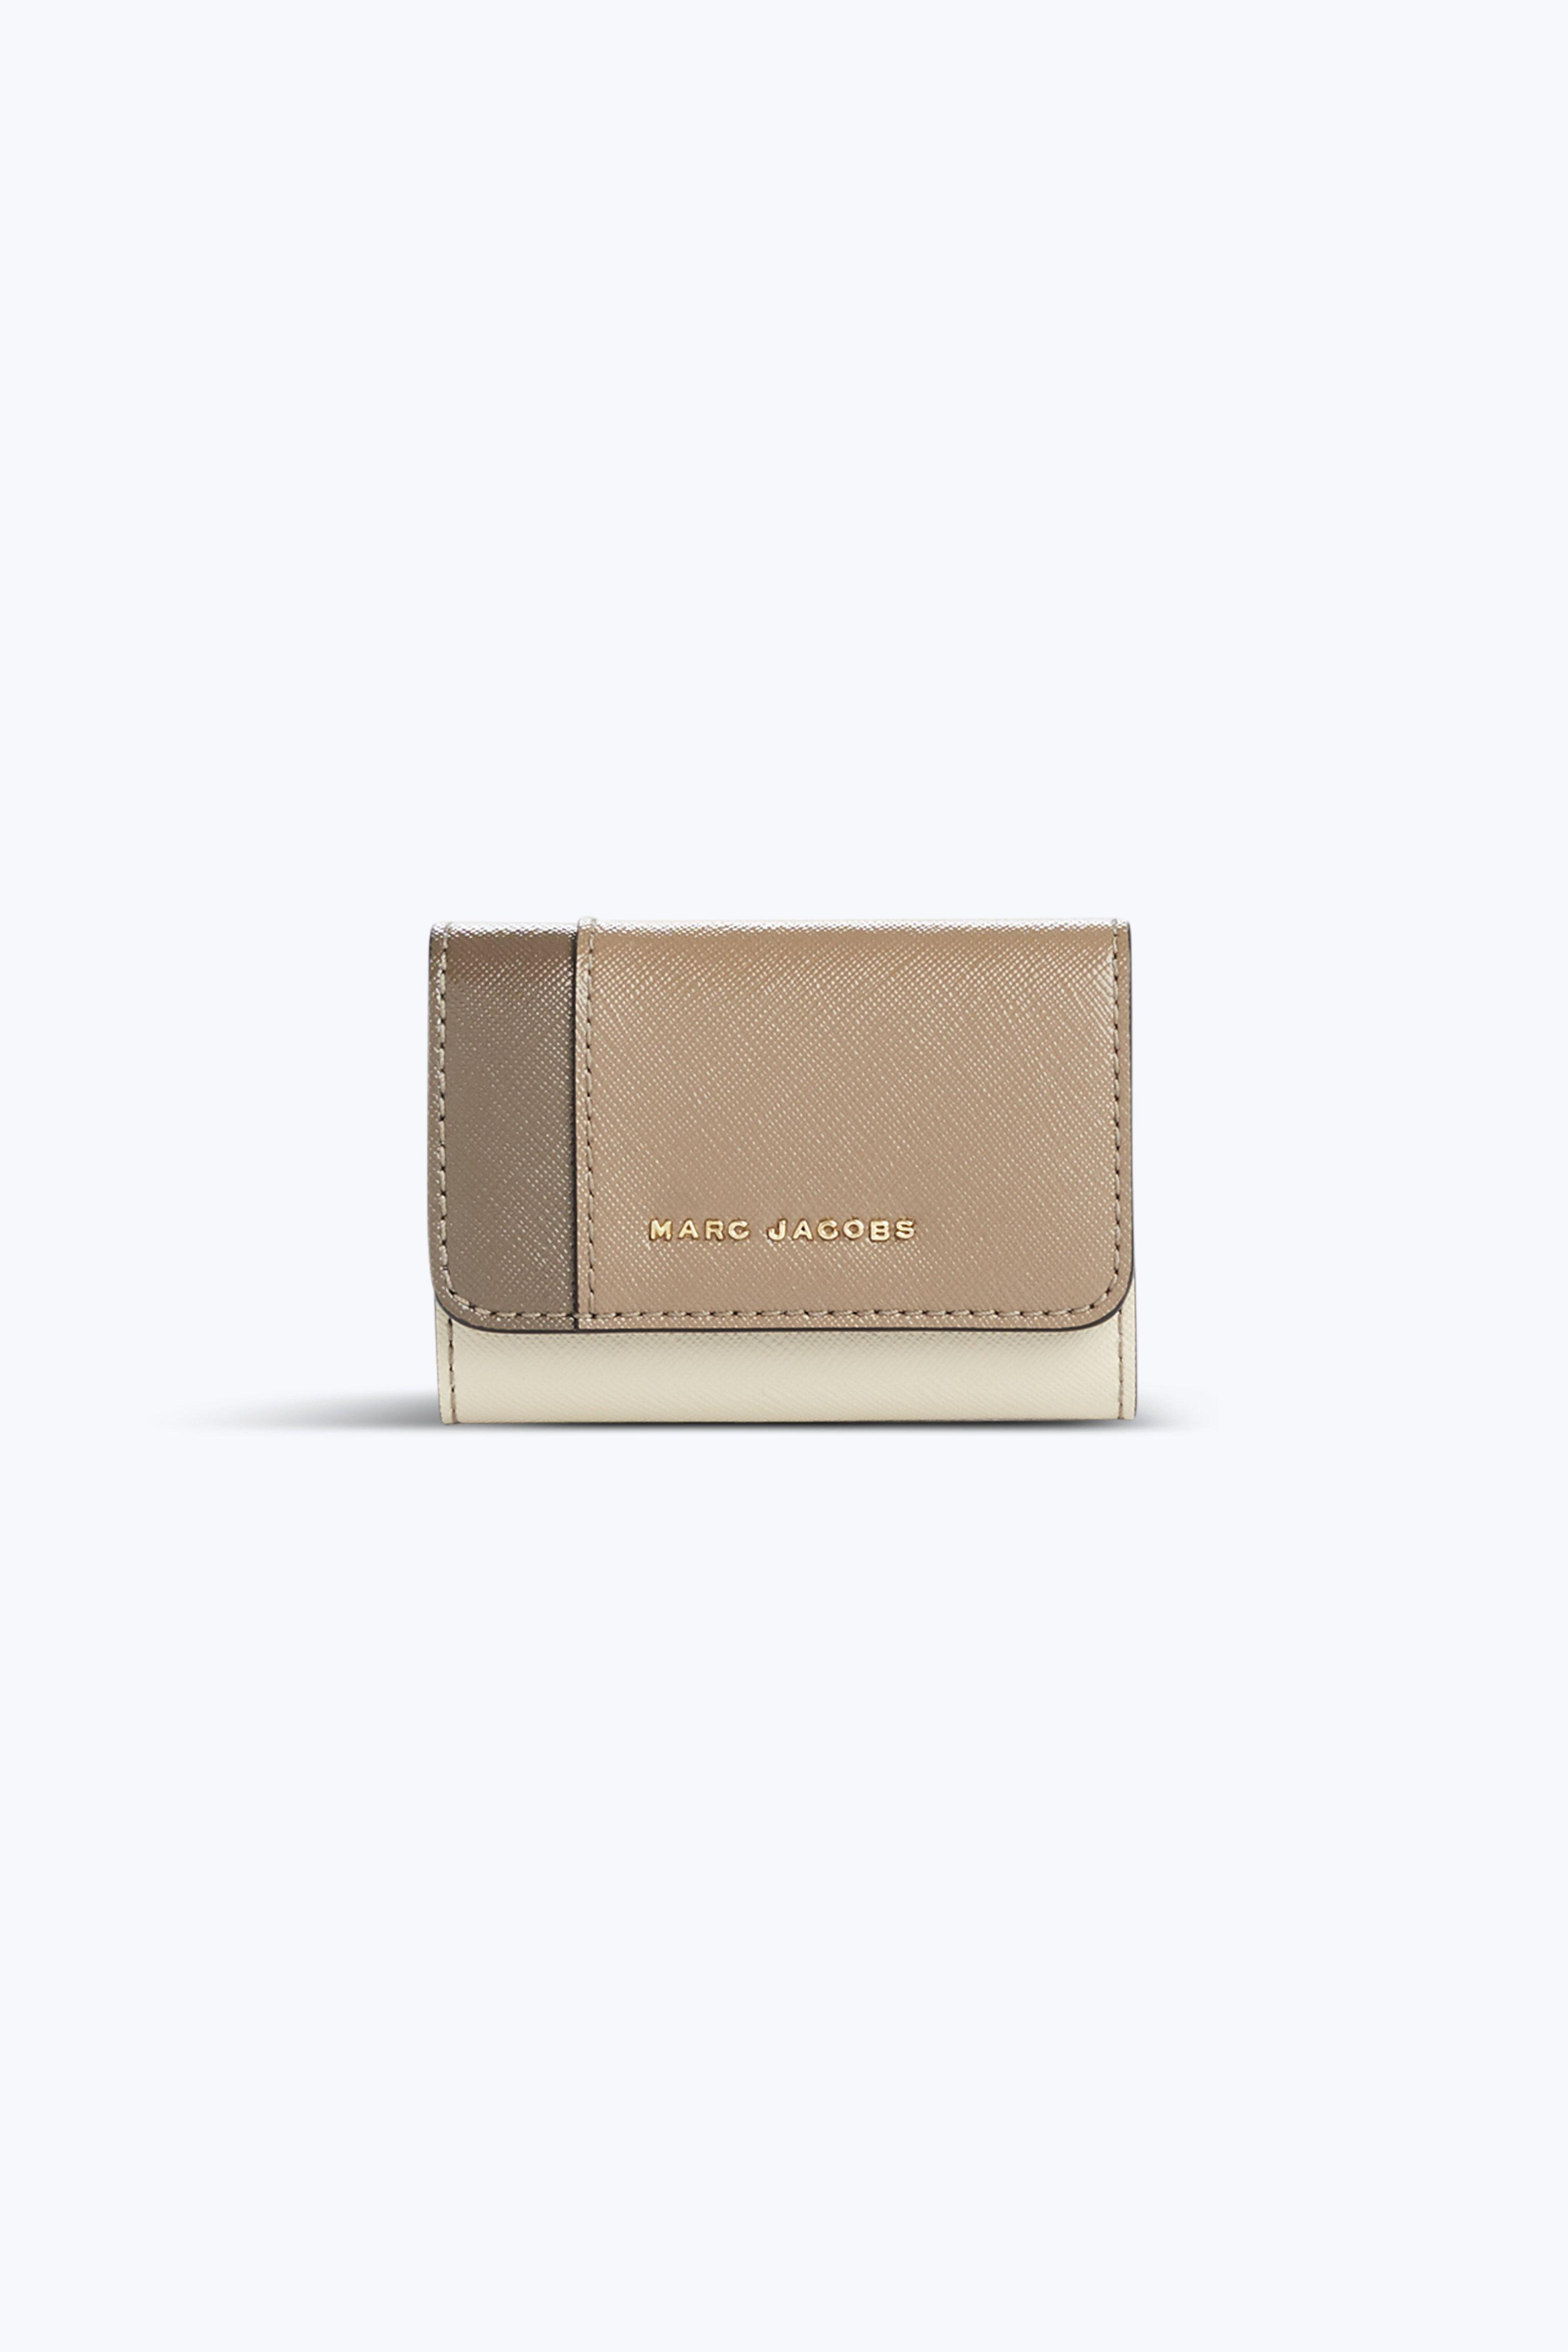 Marc Jacobs Saffiano Colorblocked Key Case In French Grey Multi